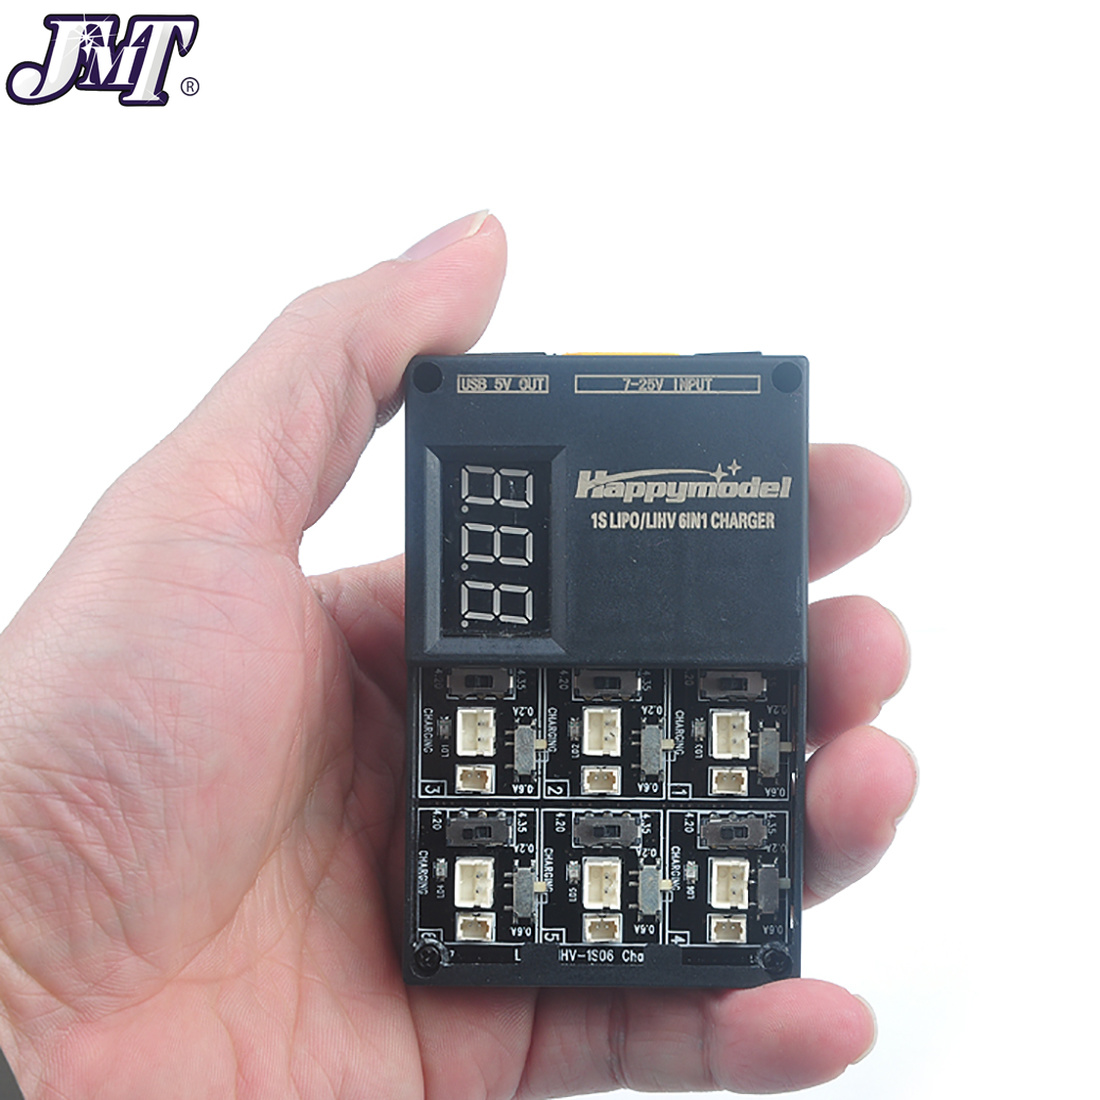 6 in 1 3.7V 3.8V 1S Lipo LiHv Battery Charger Board for Tiny 6 7 QX65 Mobula7 Mini RC Quadcopter FPV Racing Drone Bwhoop Parts-in Parts & Accessories from Toys & Hobbies